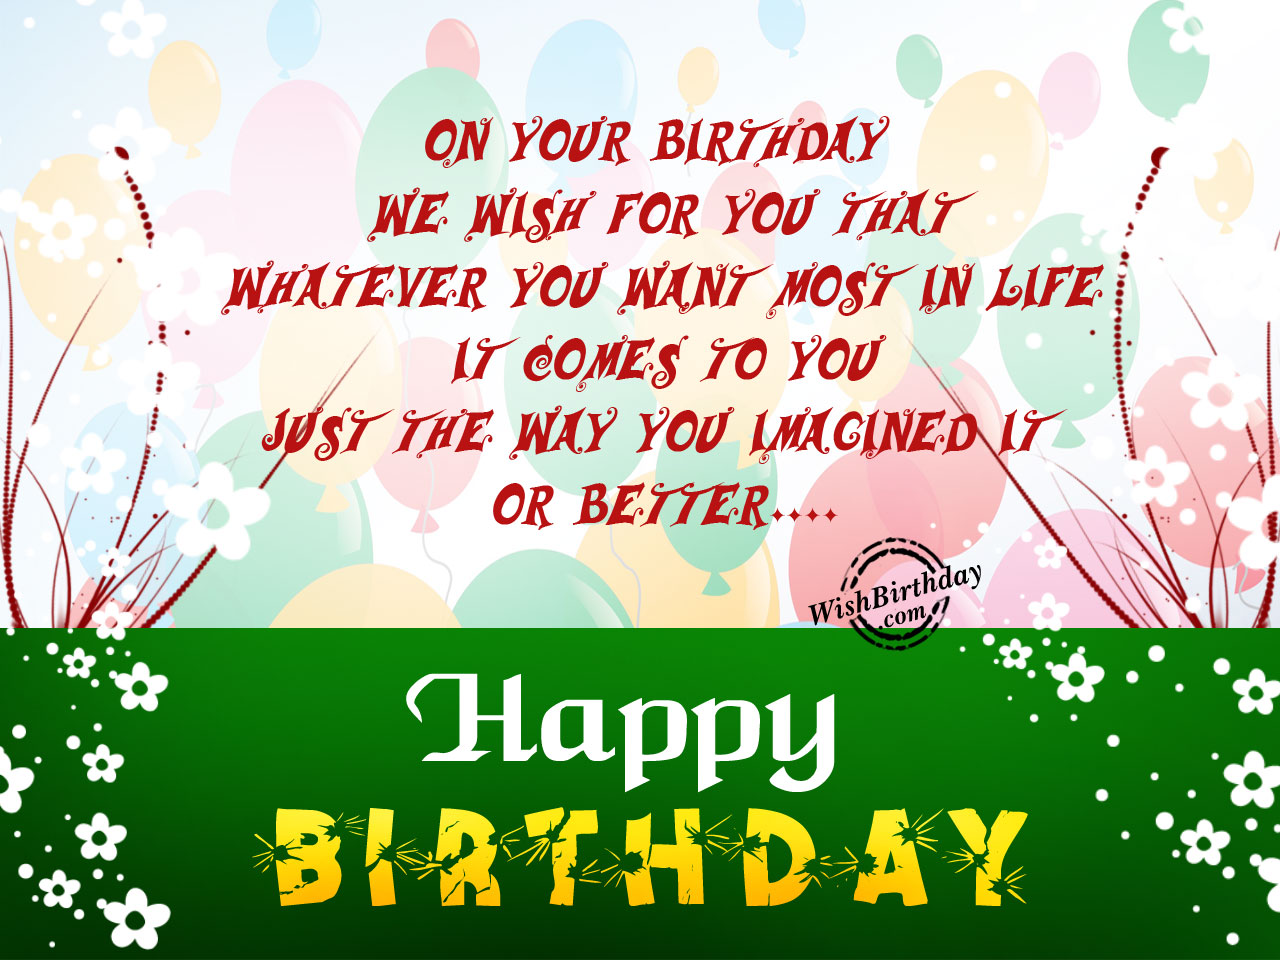 Happy Birthday Message Bangla ~ Birthday wishes with balloons images pictures